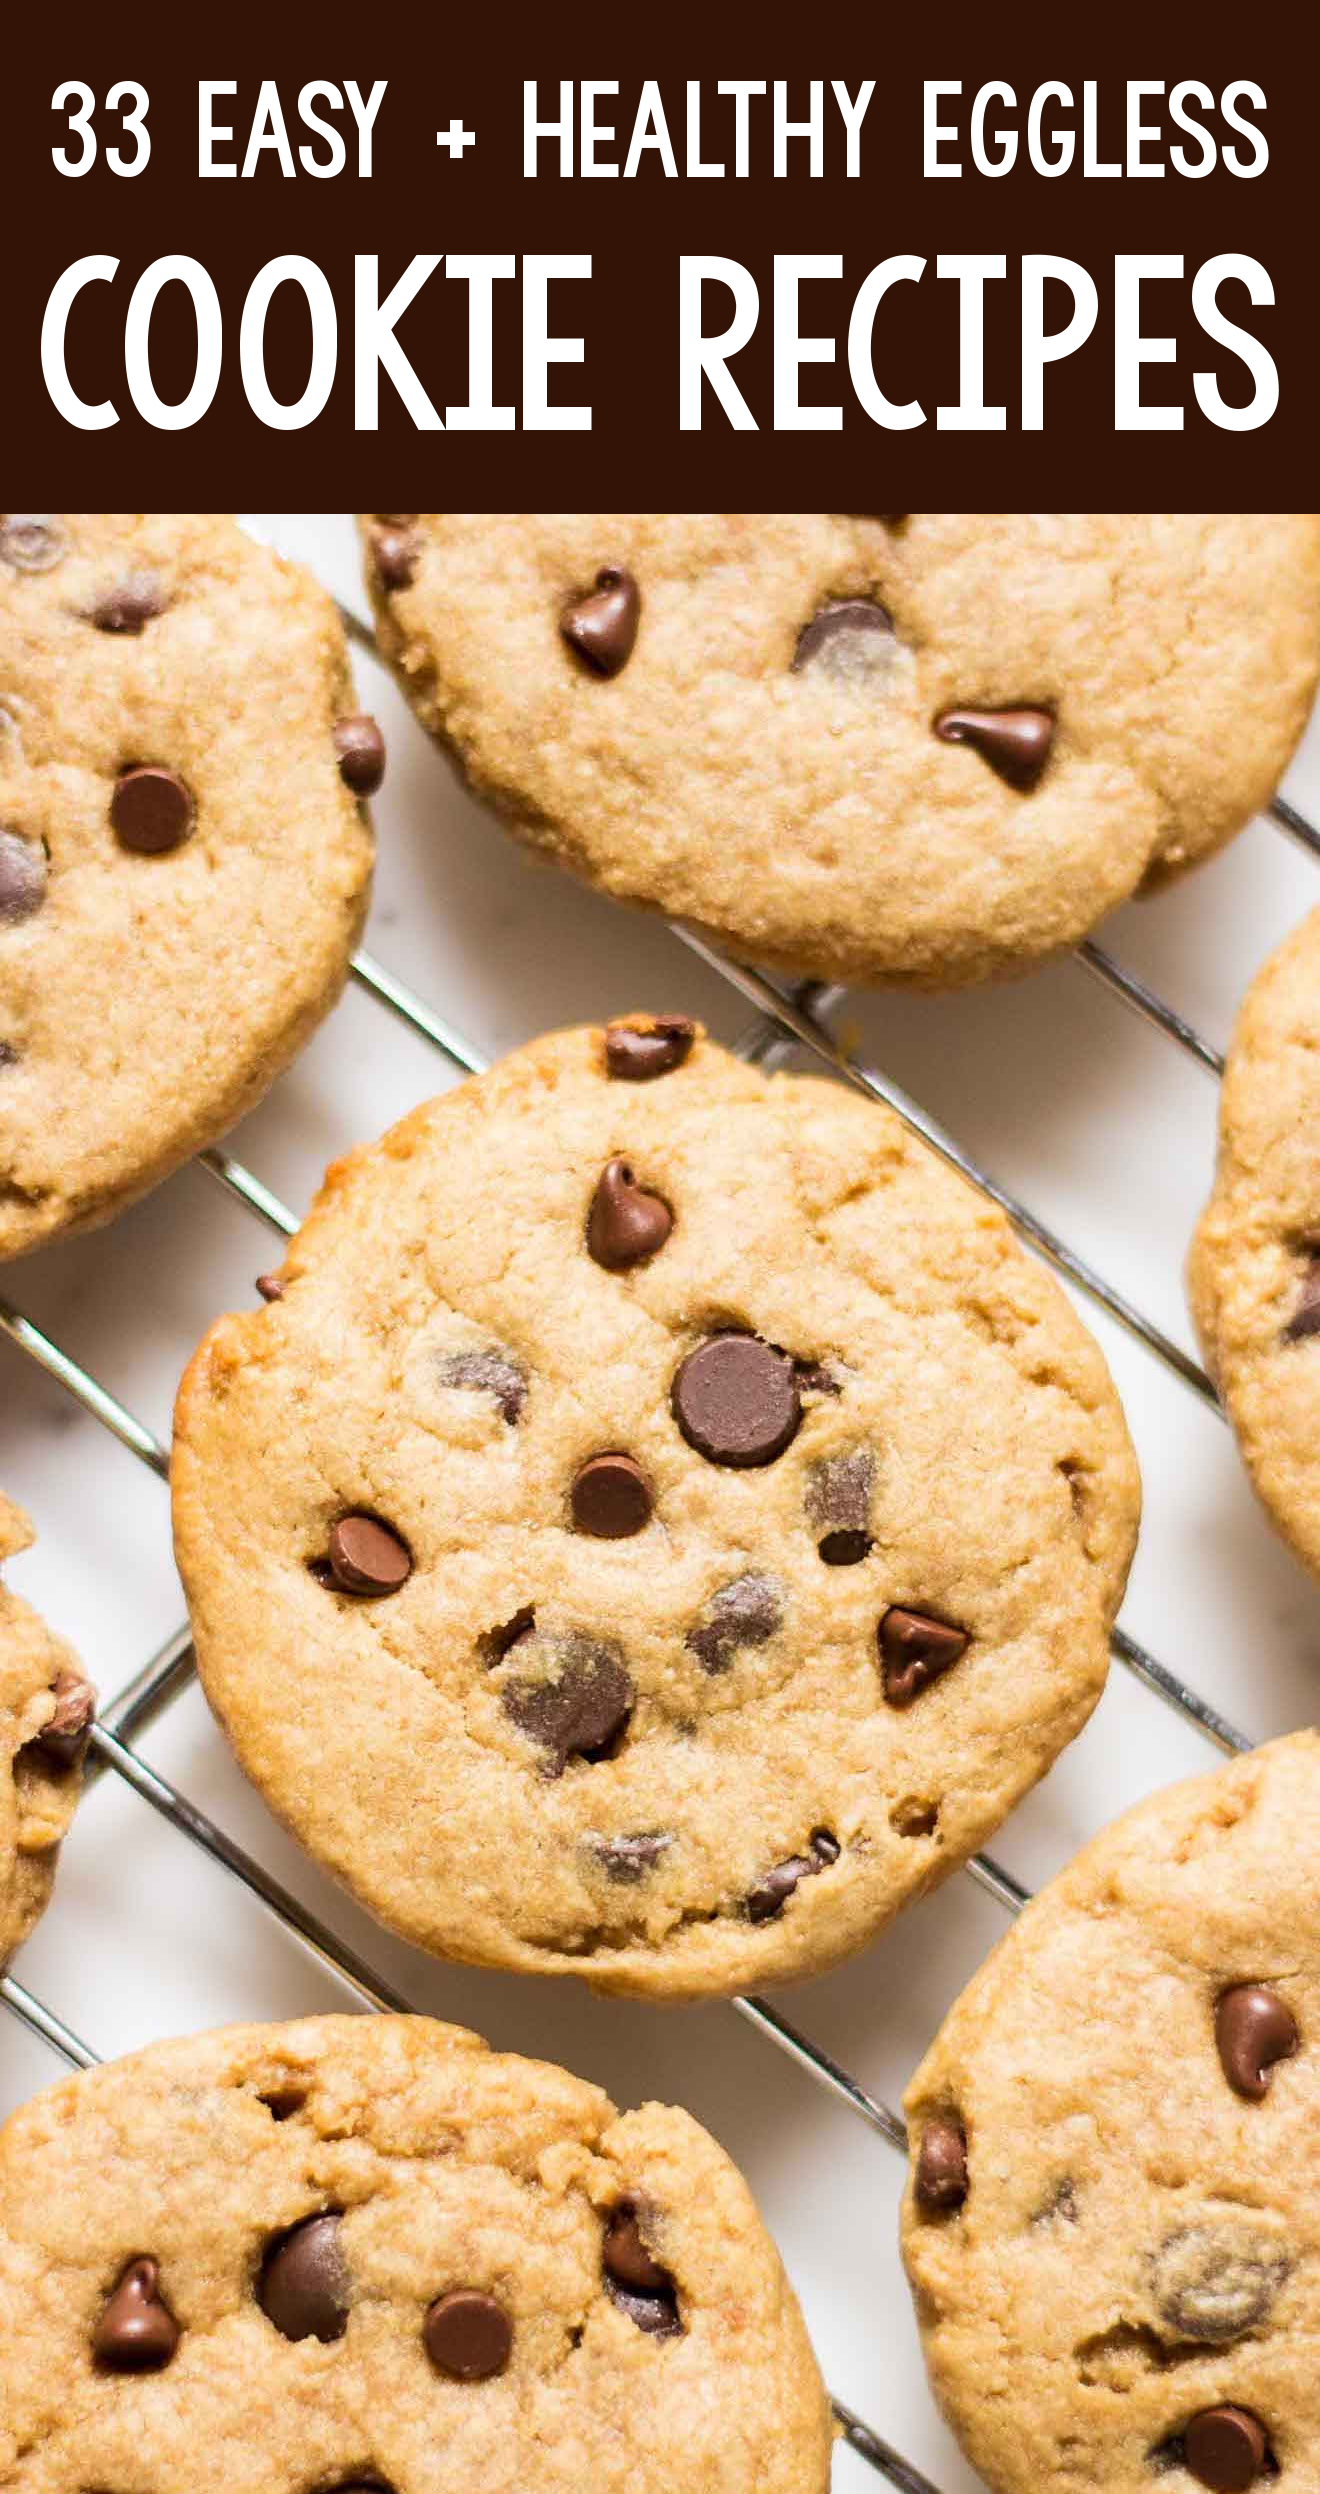 the BEST EVER healthy dairy-free eggless vegan chocolate chip peanut butter banana cookies